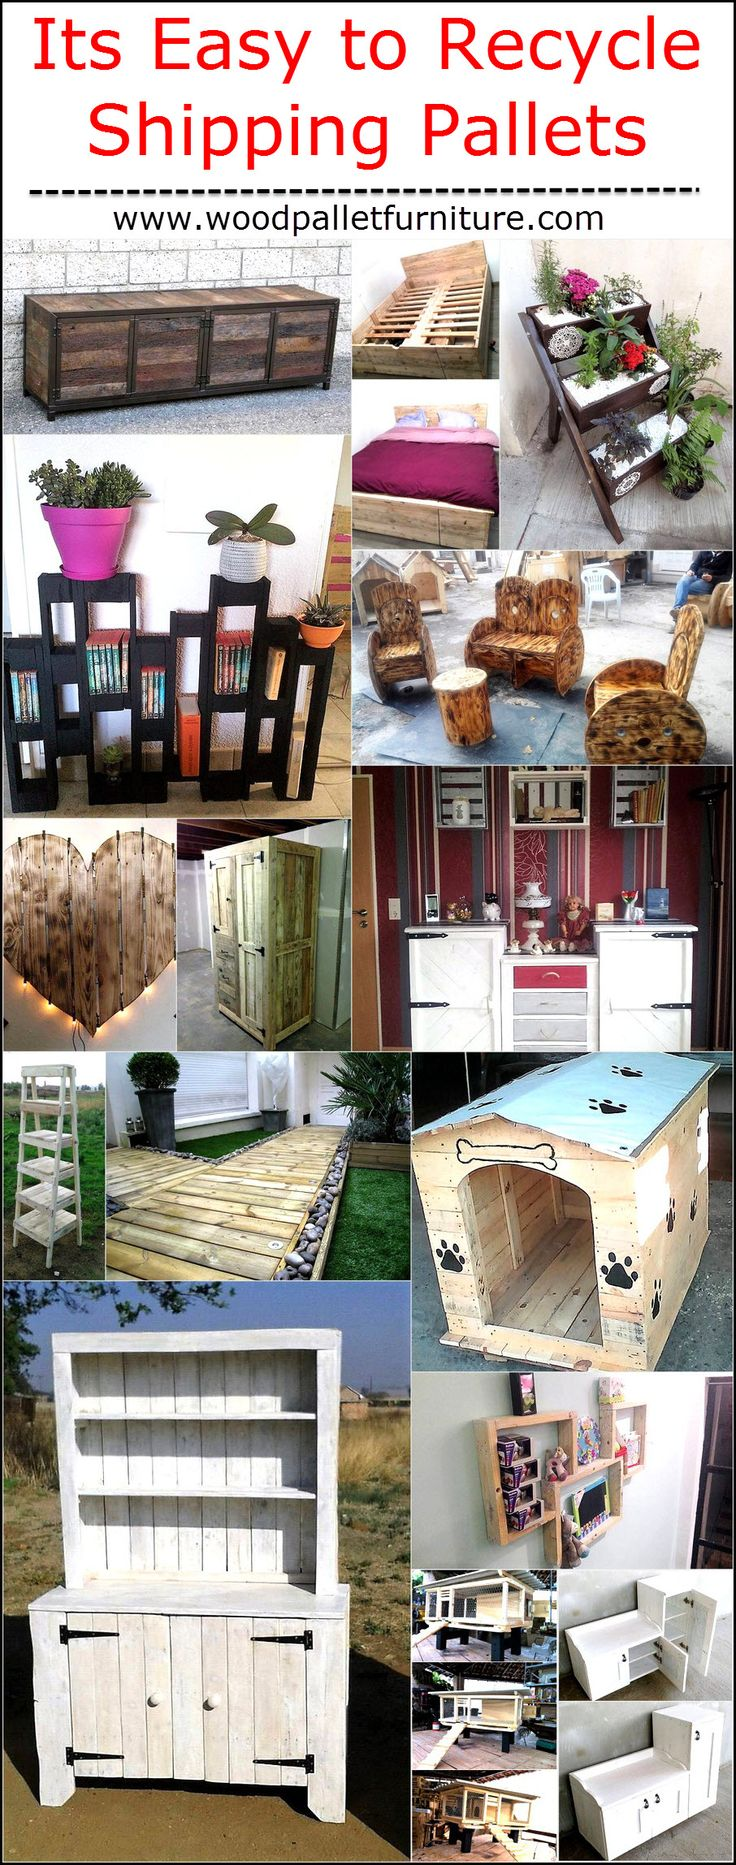 Wooden transport pallets have become increasingly popular for diy - Recyclable Products Are Always Attractive And Are The Best Ideas That People Can Do Wooden